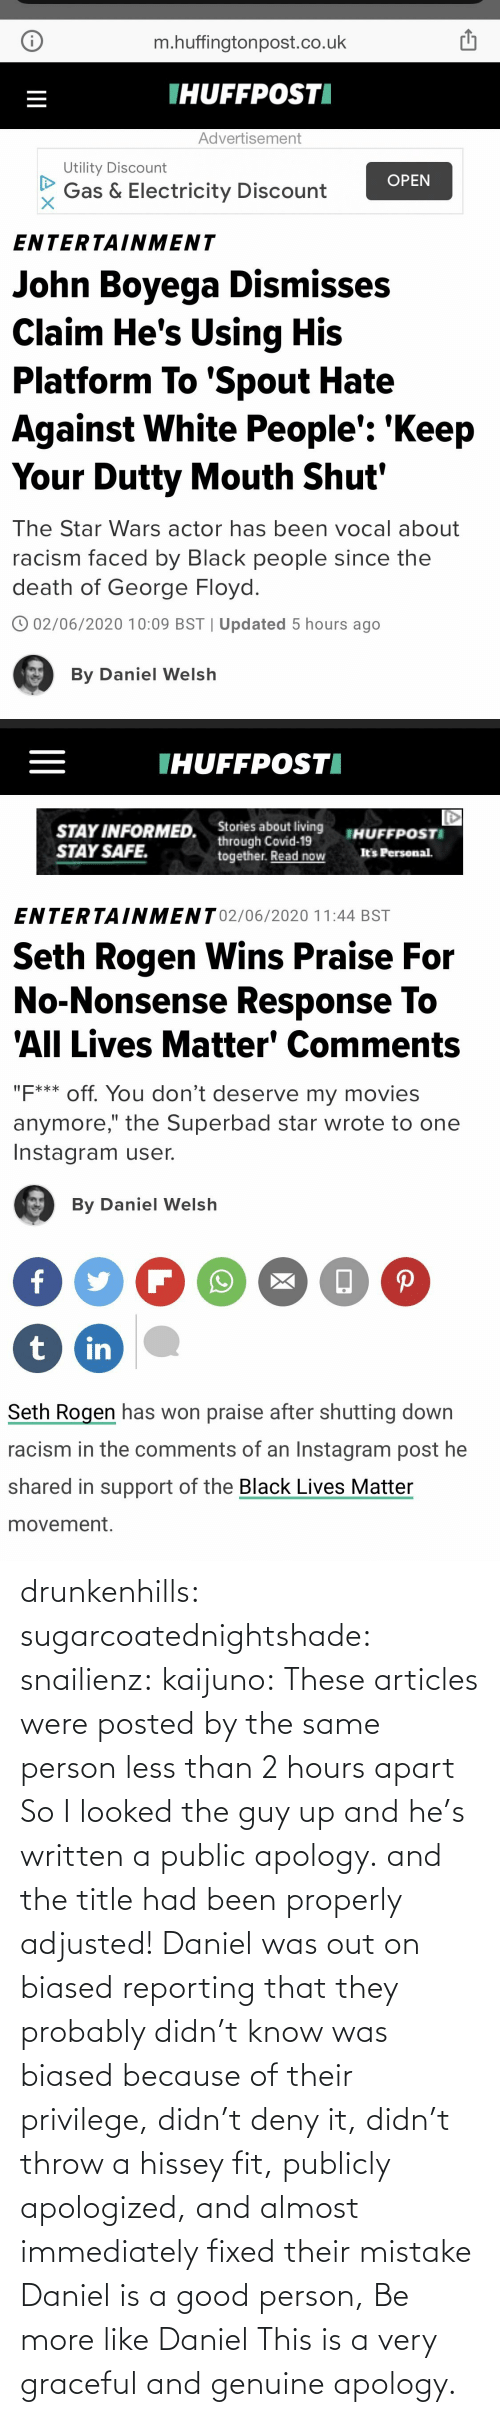 Written: drunkenhills: sugarcoatednightshade:   snailienz:  kaijuno: These articles were posted by the same person less than 2 hours apart    So I looked the guy up and he's written a public apology. and the title had been properly adjusted!    Daniel was out on biased reporting that they probably didn't know was biased because of their privilege, didn't deny it, didn't throw a hissey fit, publicly apologized, and almost immediately fixed their mistake Daniel is a good person, Be more like Daniel     This is a very graceful and genuine apology.